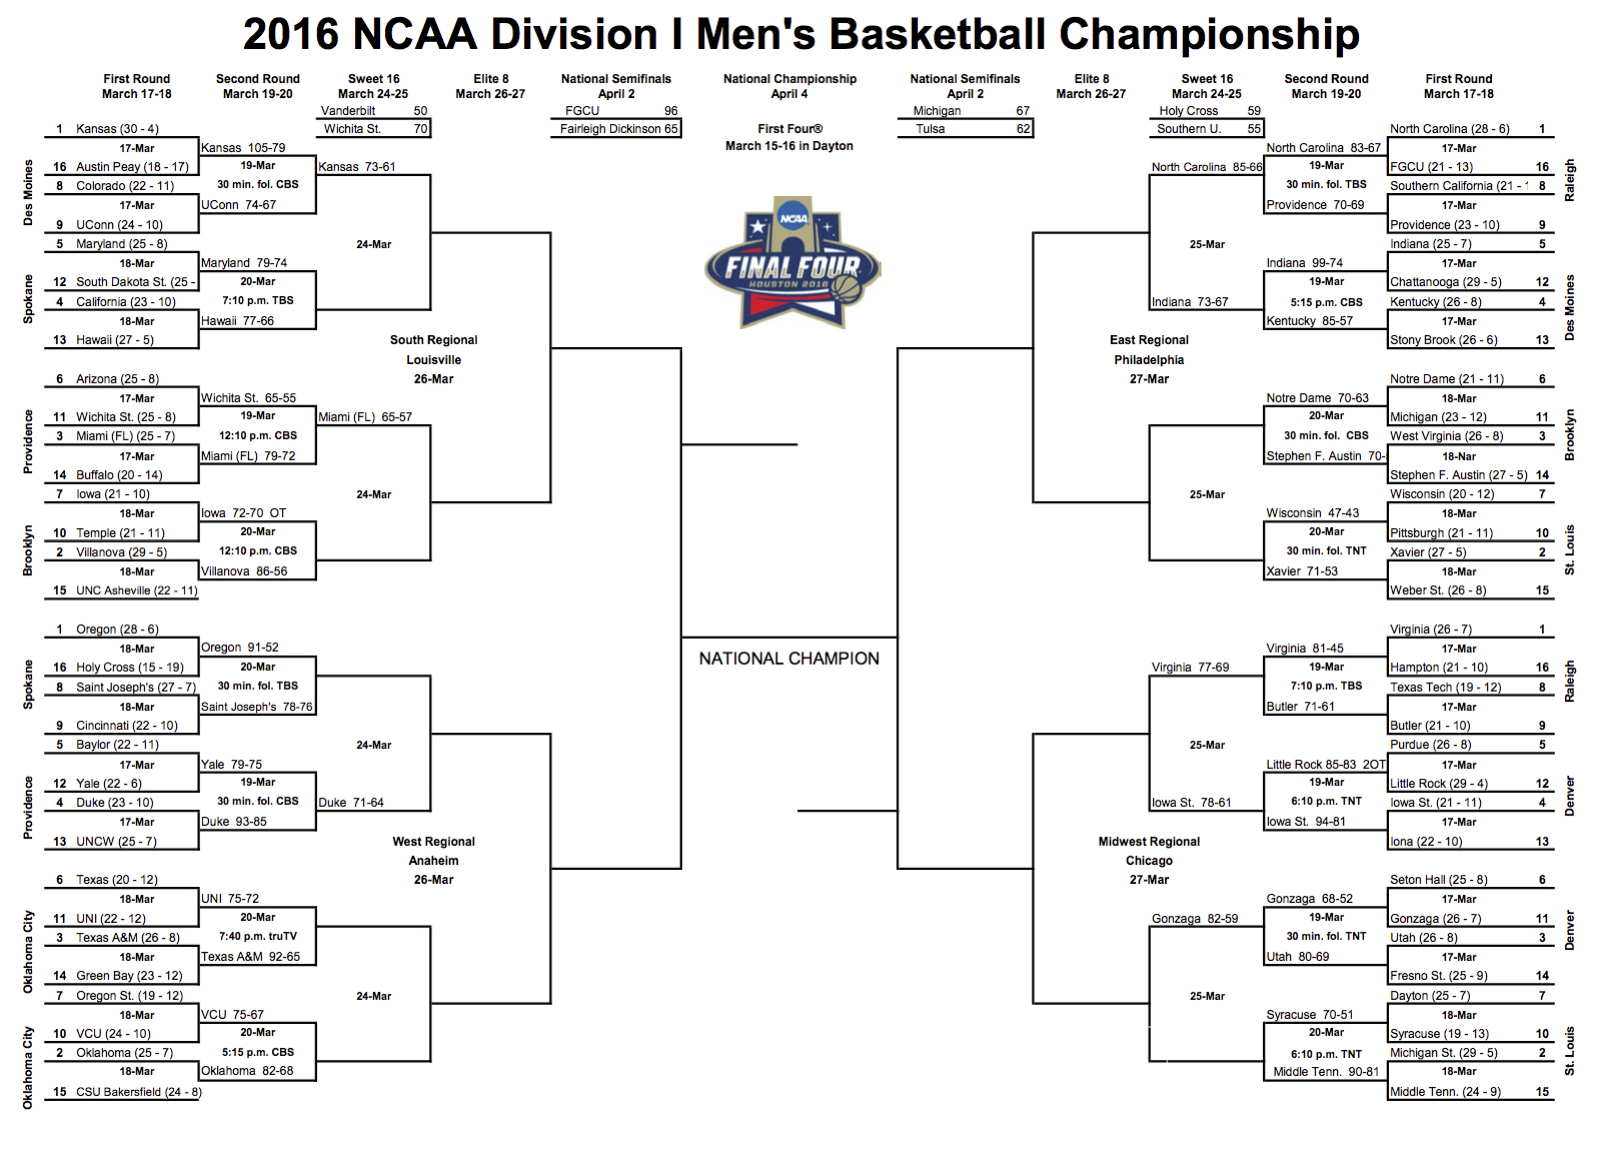 2016 NCAA Division I Men's Basketball Bracket - 3.19.16